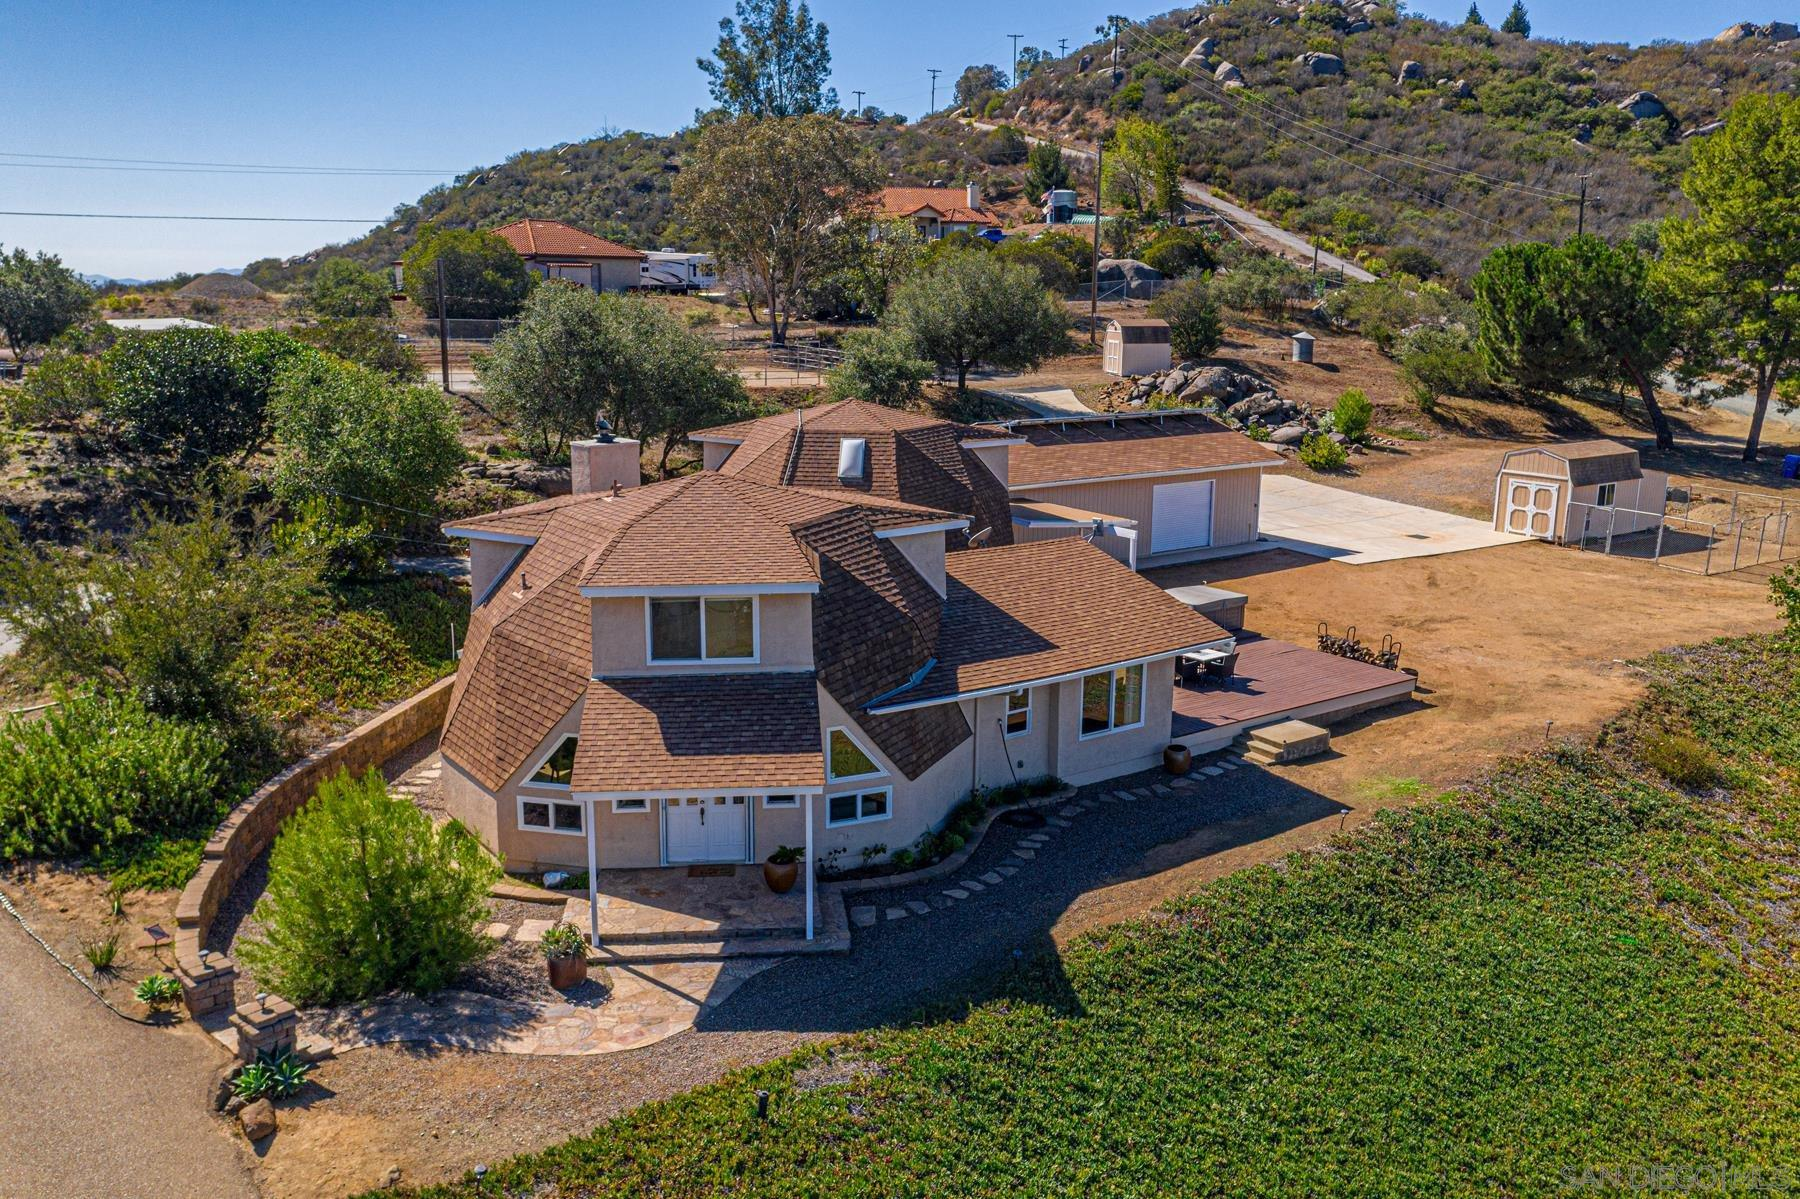 12606 Wildcat Canyon Rd, Lakeside, CA 92040